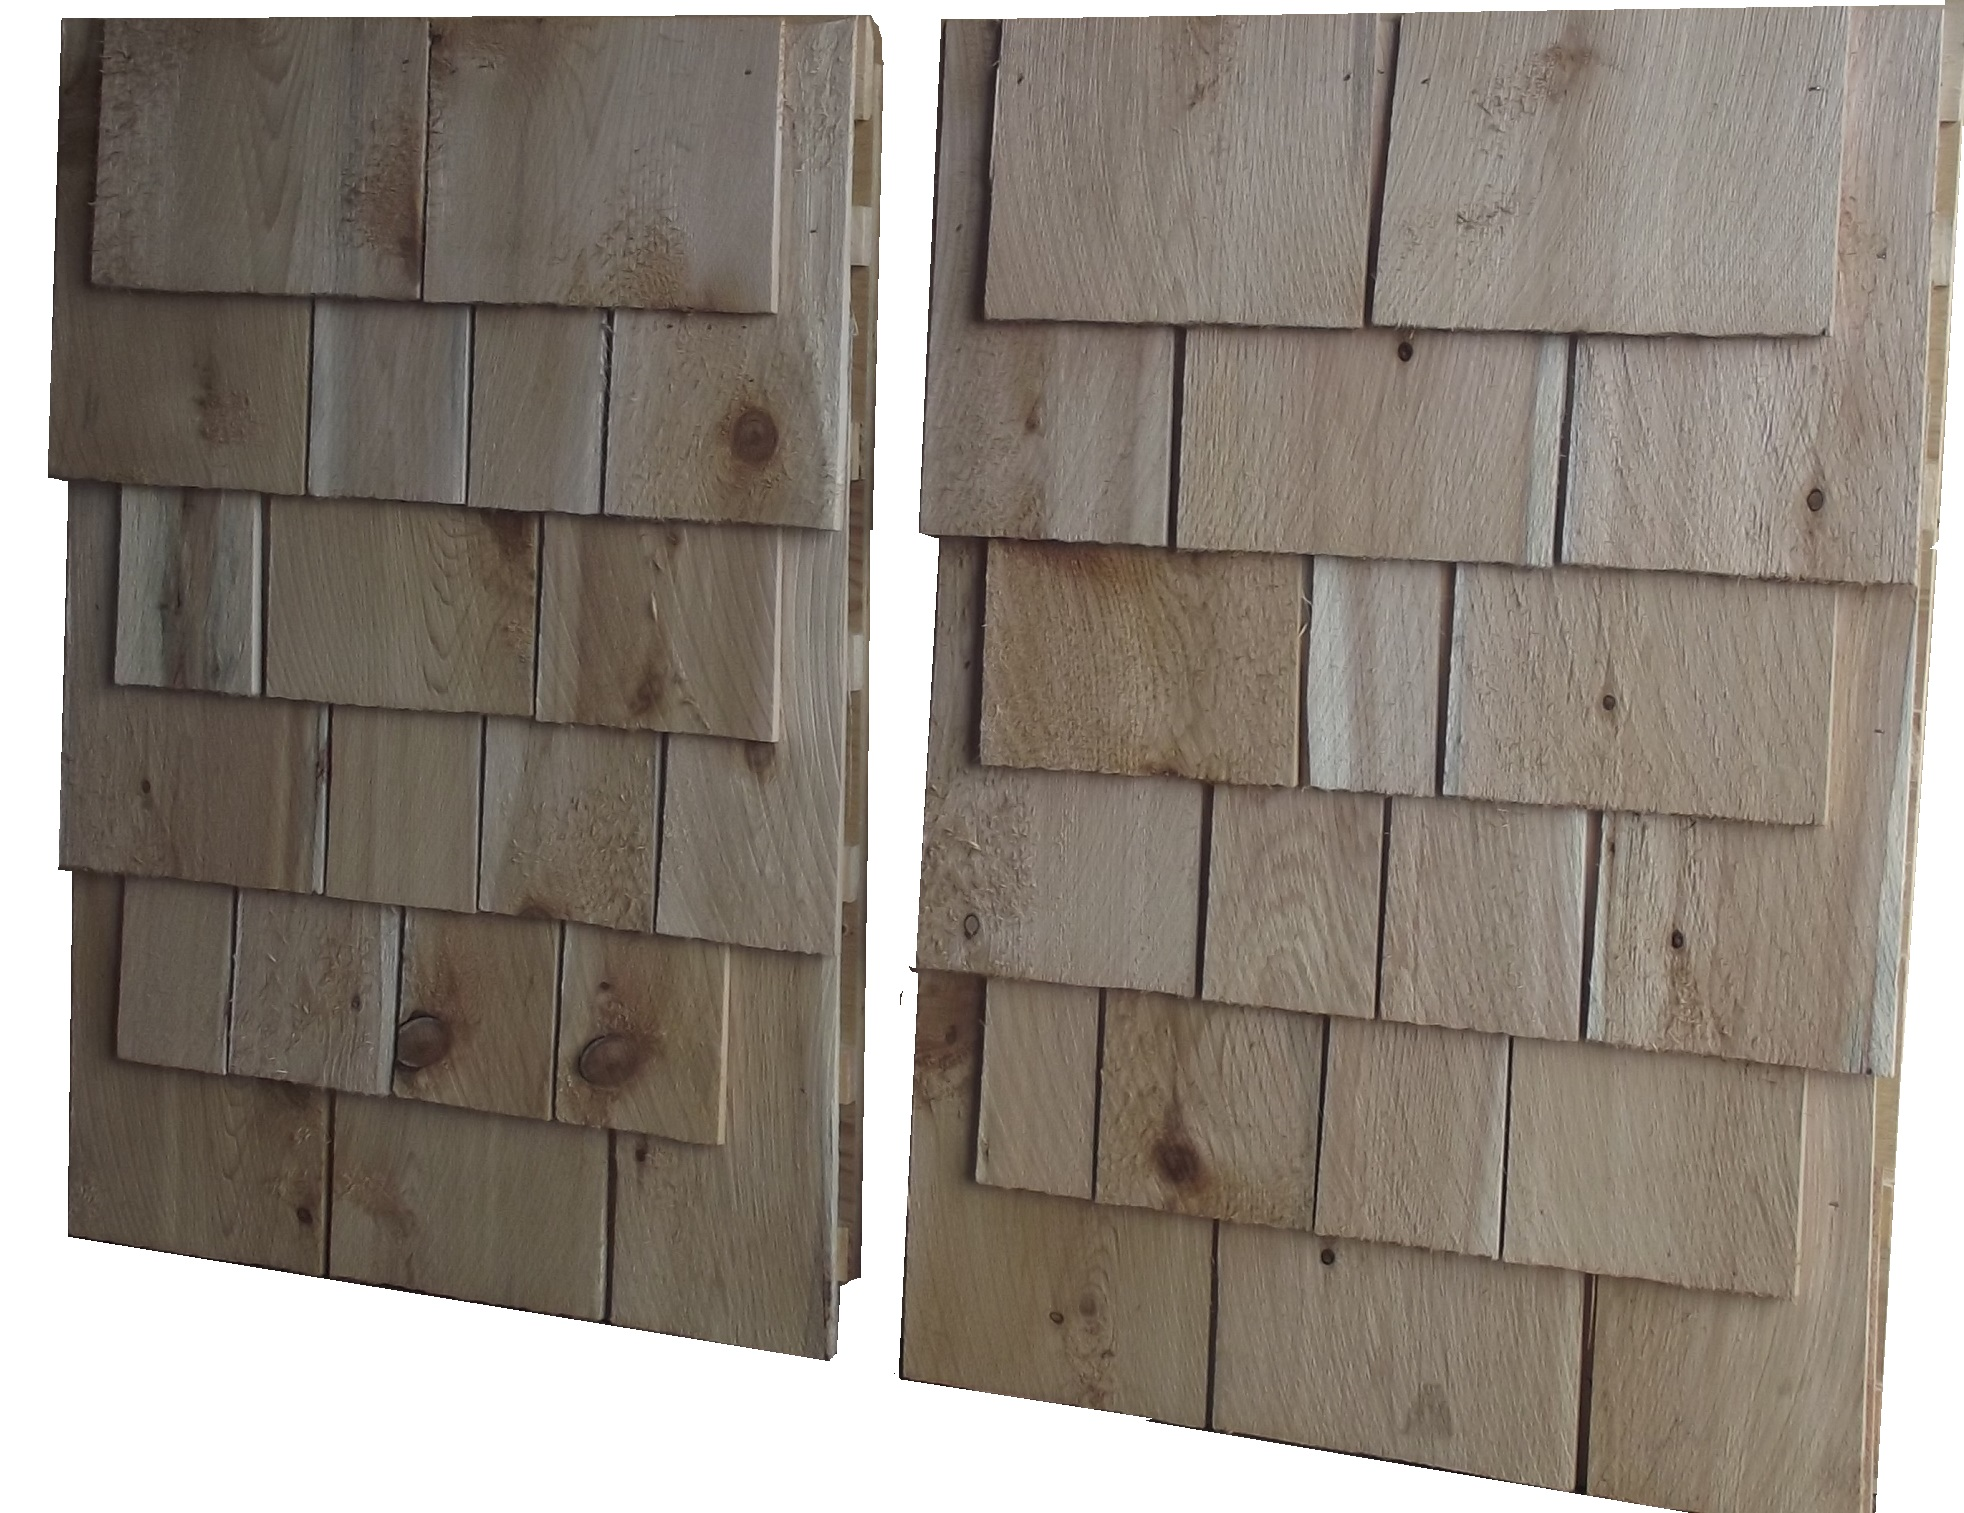 6 course white cedar siding panels